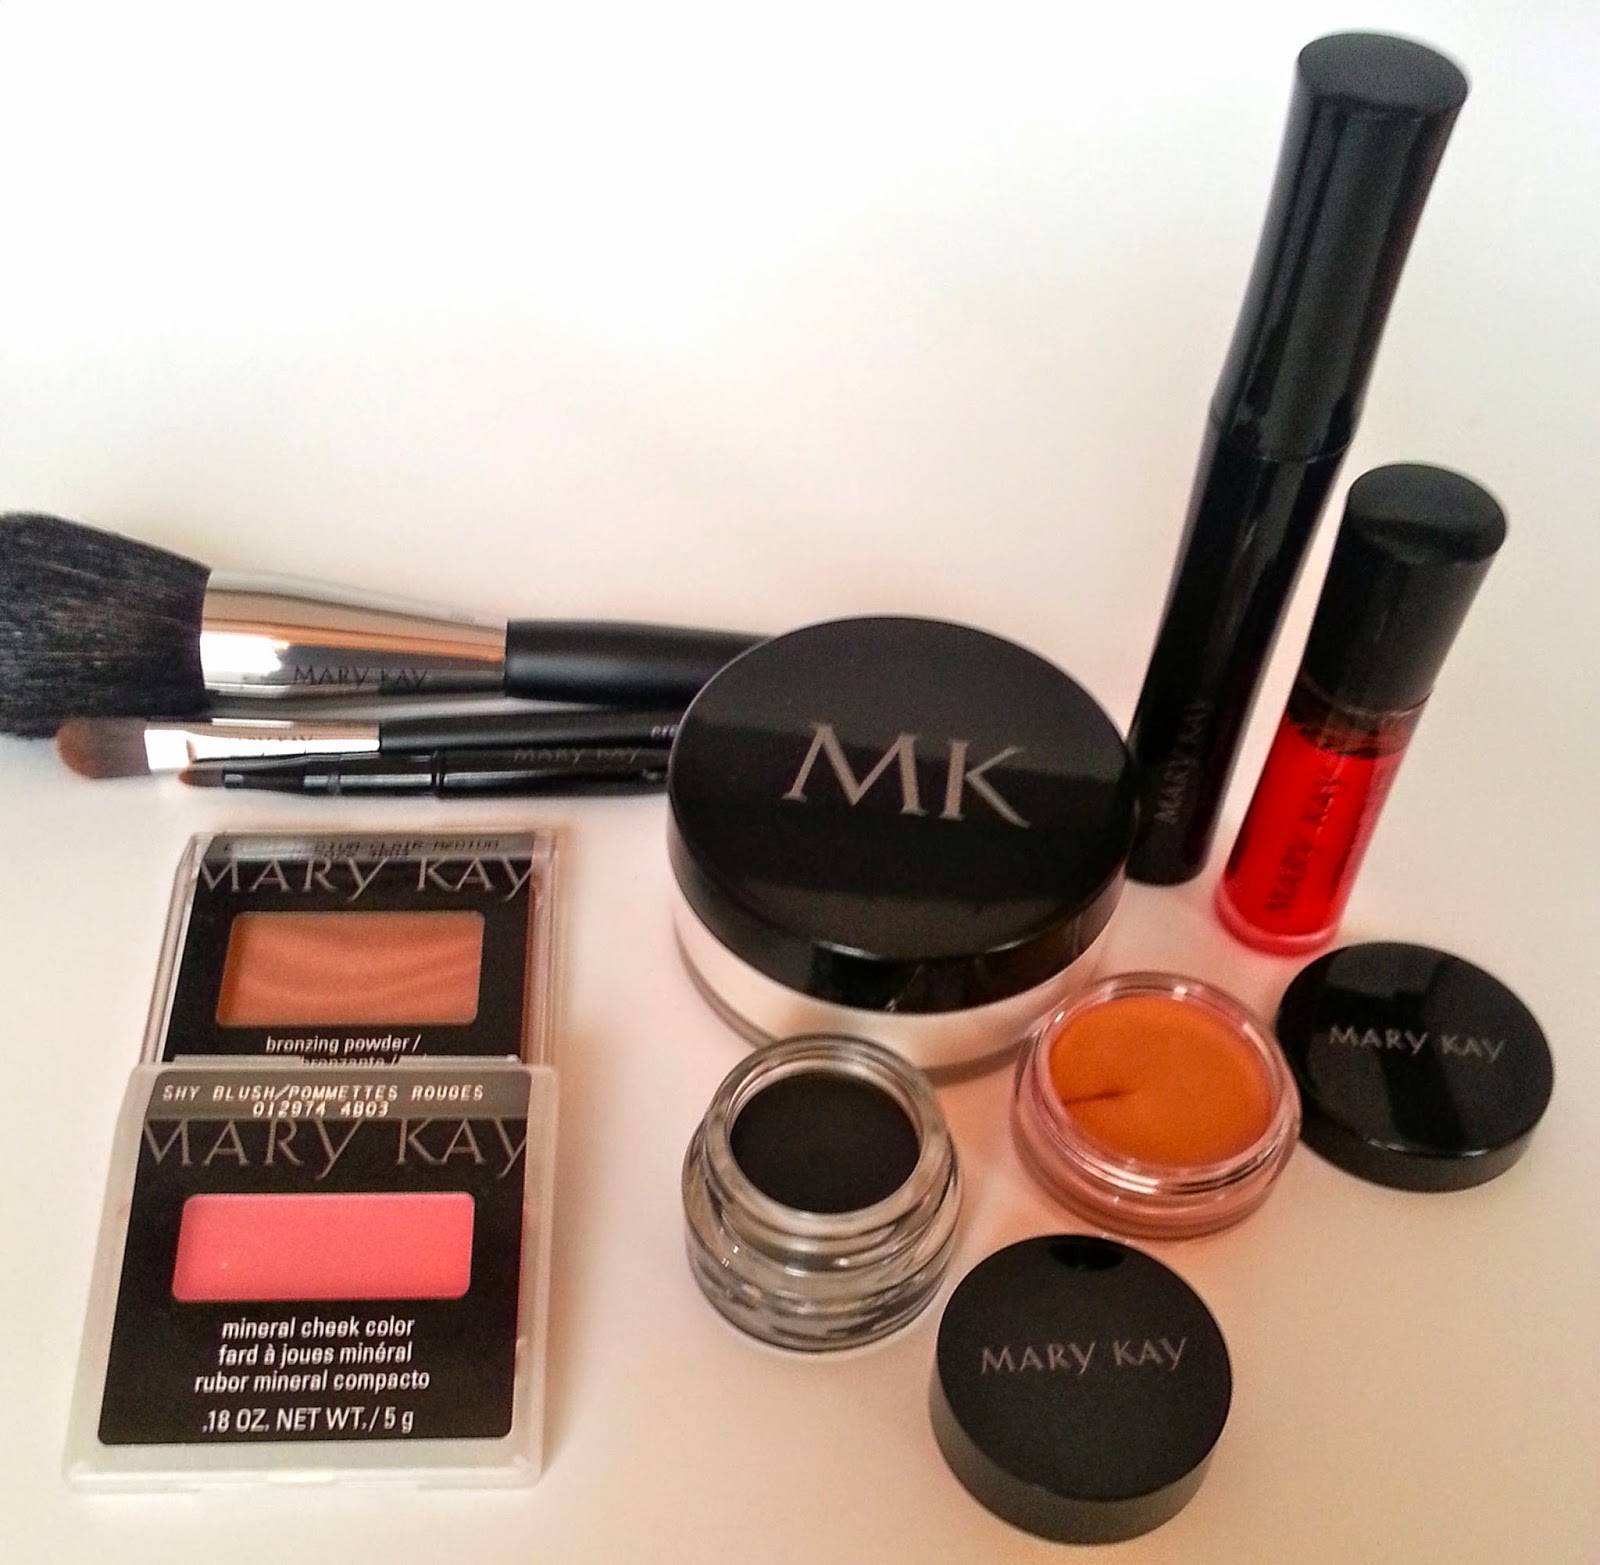 Mary Kay #MKGlam VoxBox from Influenster